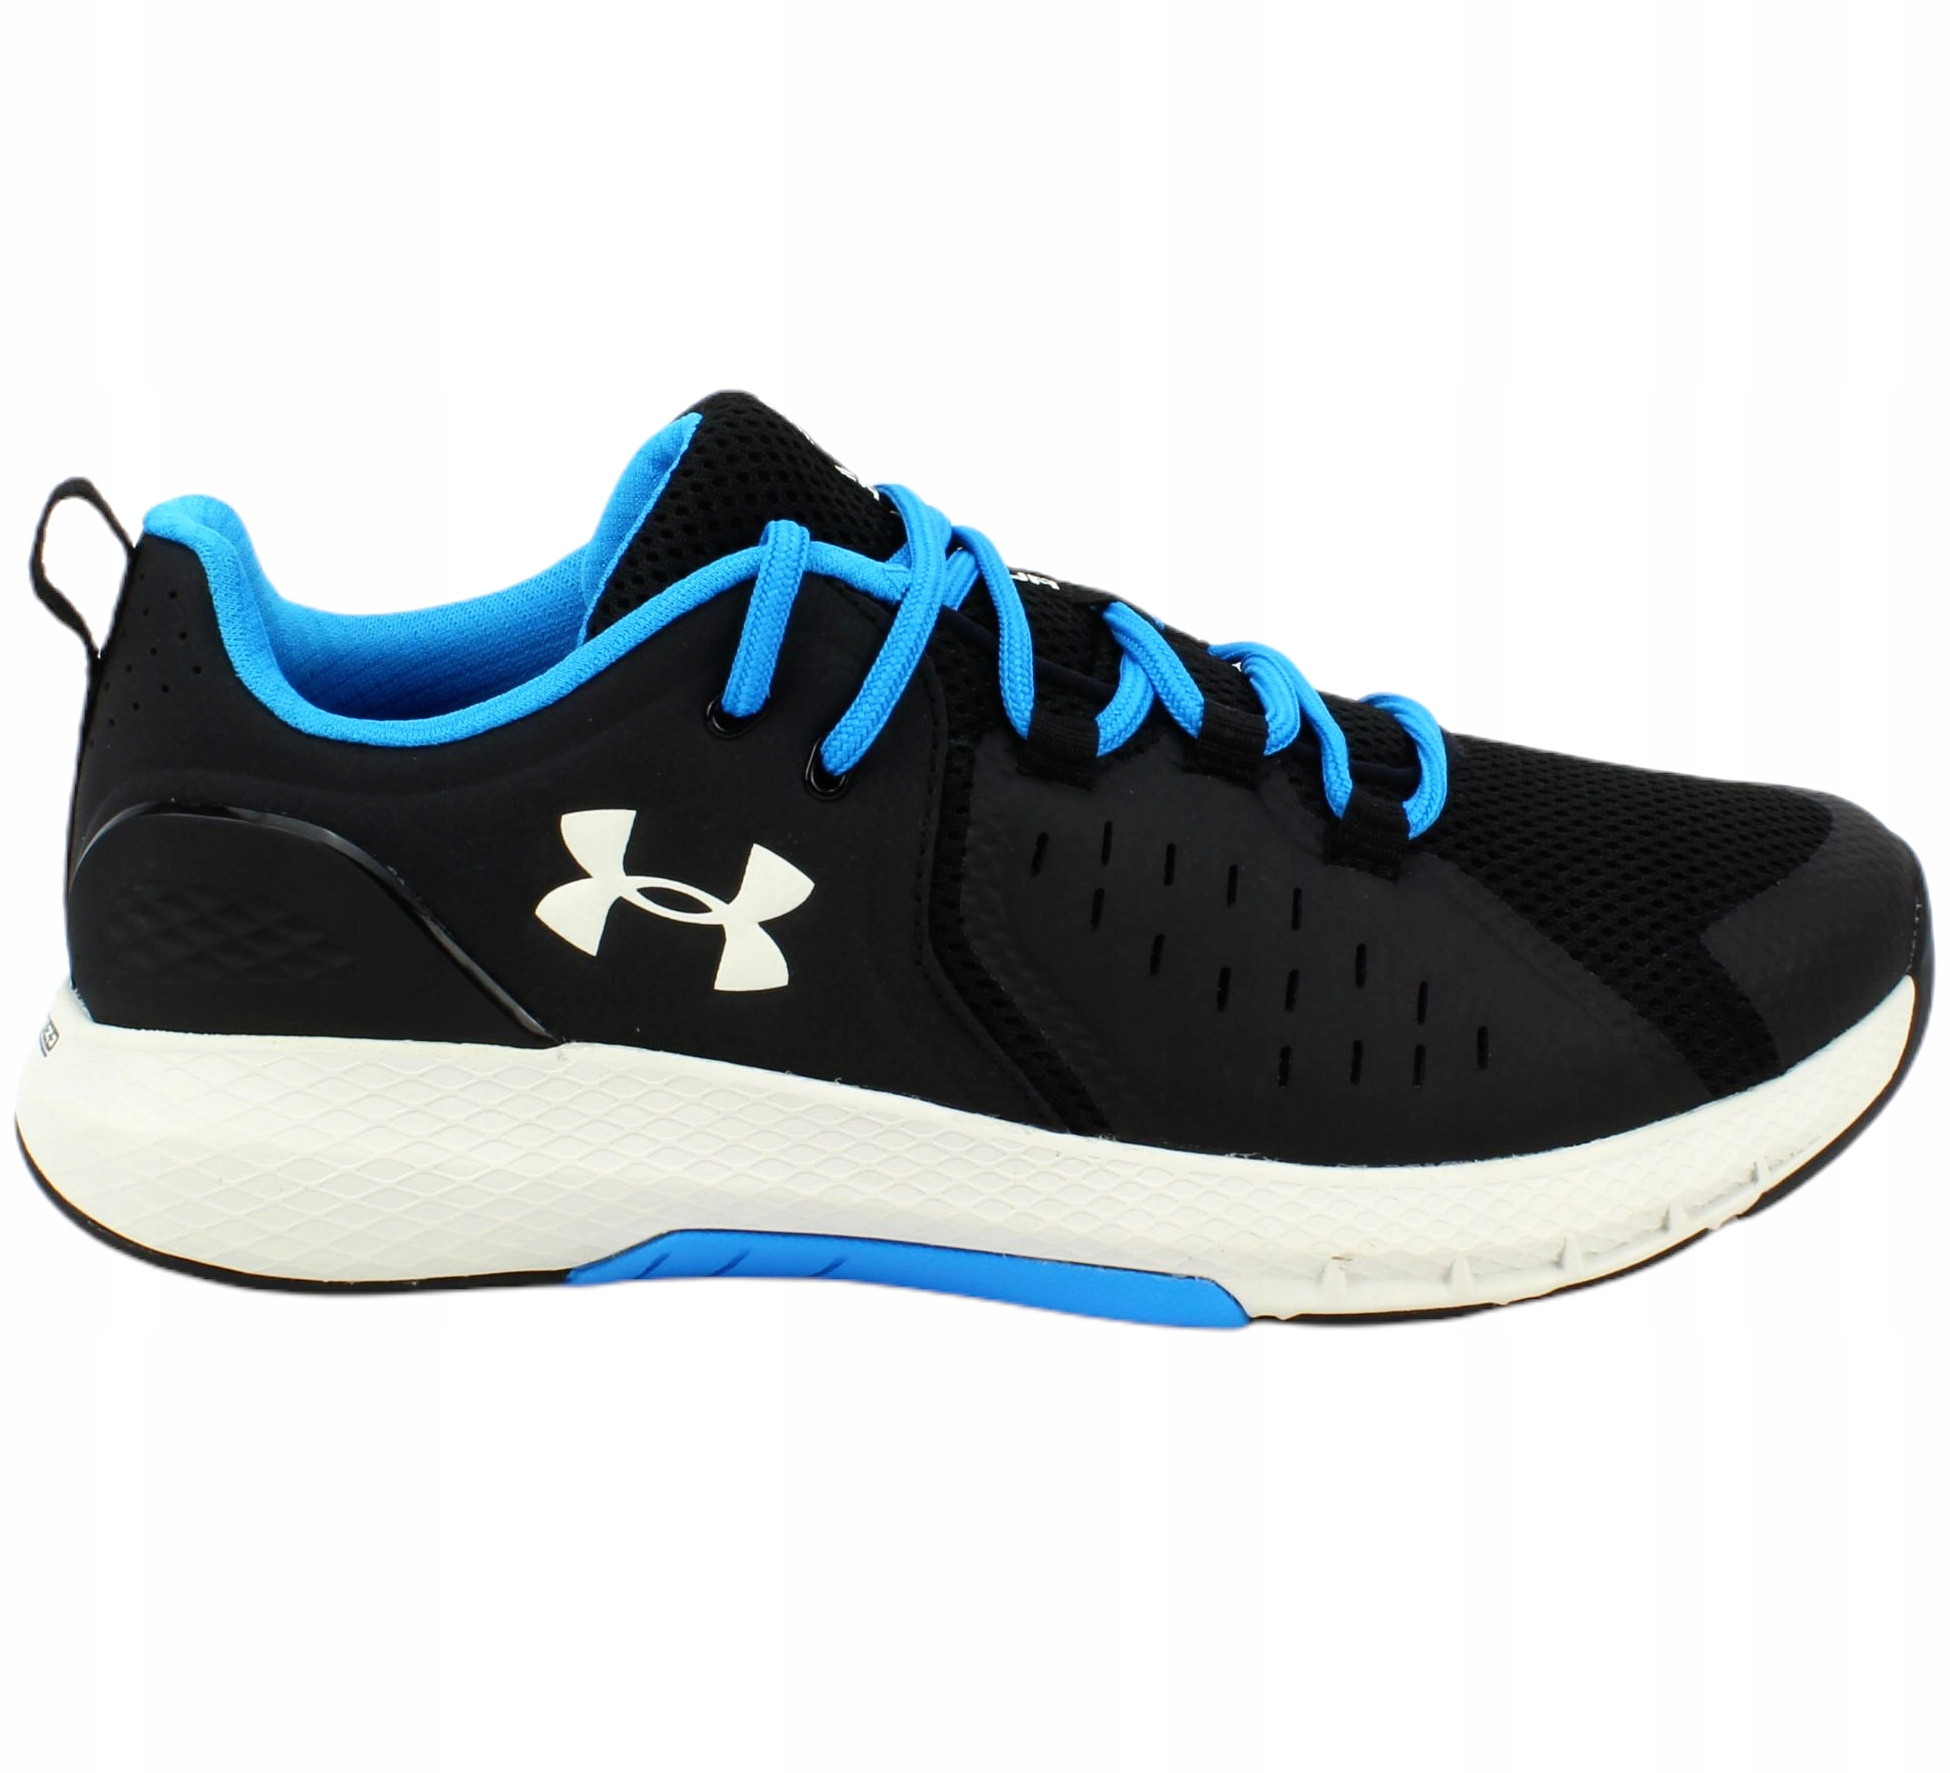 Under Armour Charged Commit TR 2 buty 42 męskie